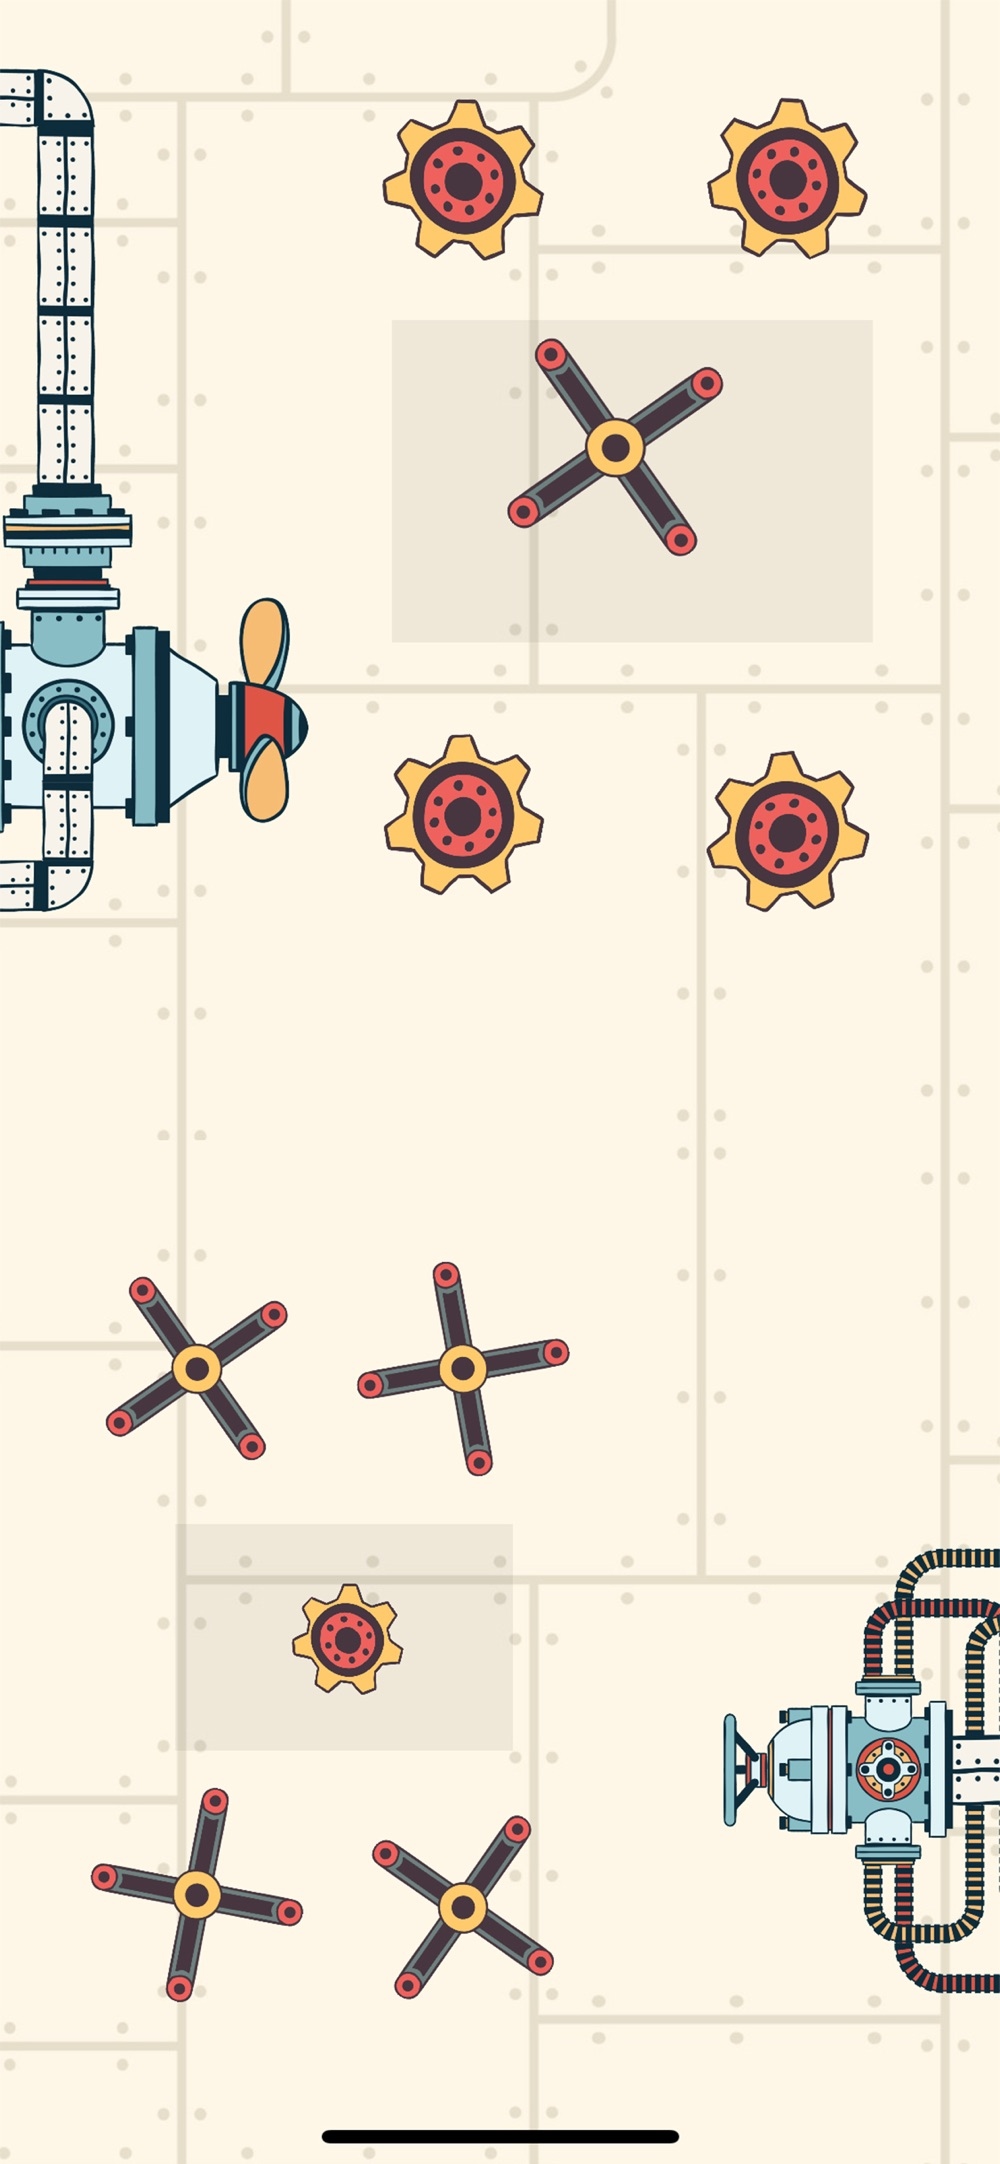 Steampunk Puzzle Physics Game hack tool